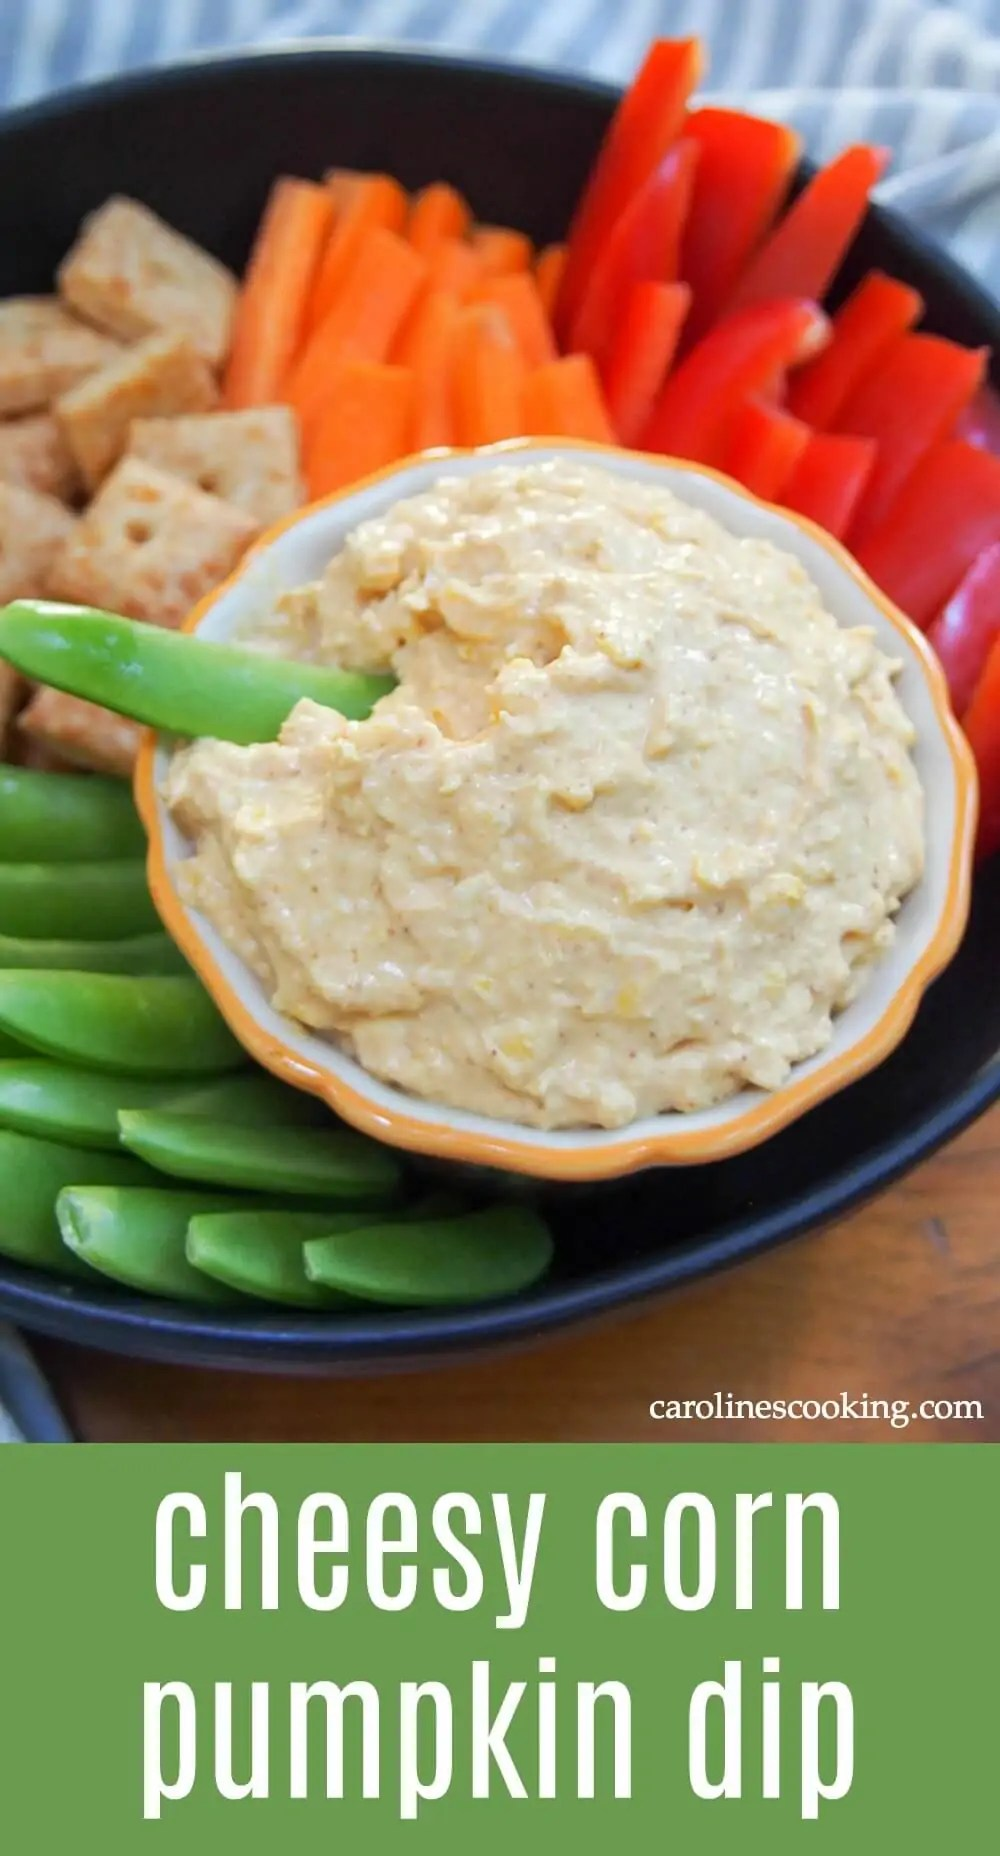 This savory pumpkin dip comes together in mere minutes and is packed with cheesy goodness and a hint of sweetness from corn. Smooth, flavorful and perfect for parties! #spons #pumpkinweek #dip #pumpkin #corndip #appetizer #fingerfood #vegetarian